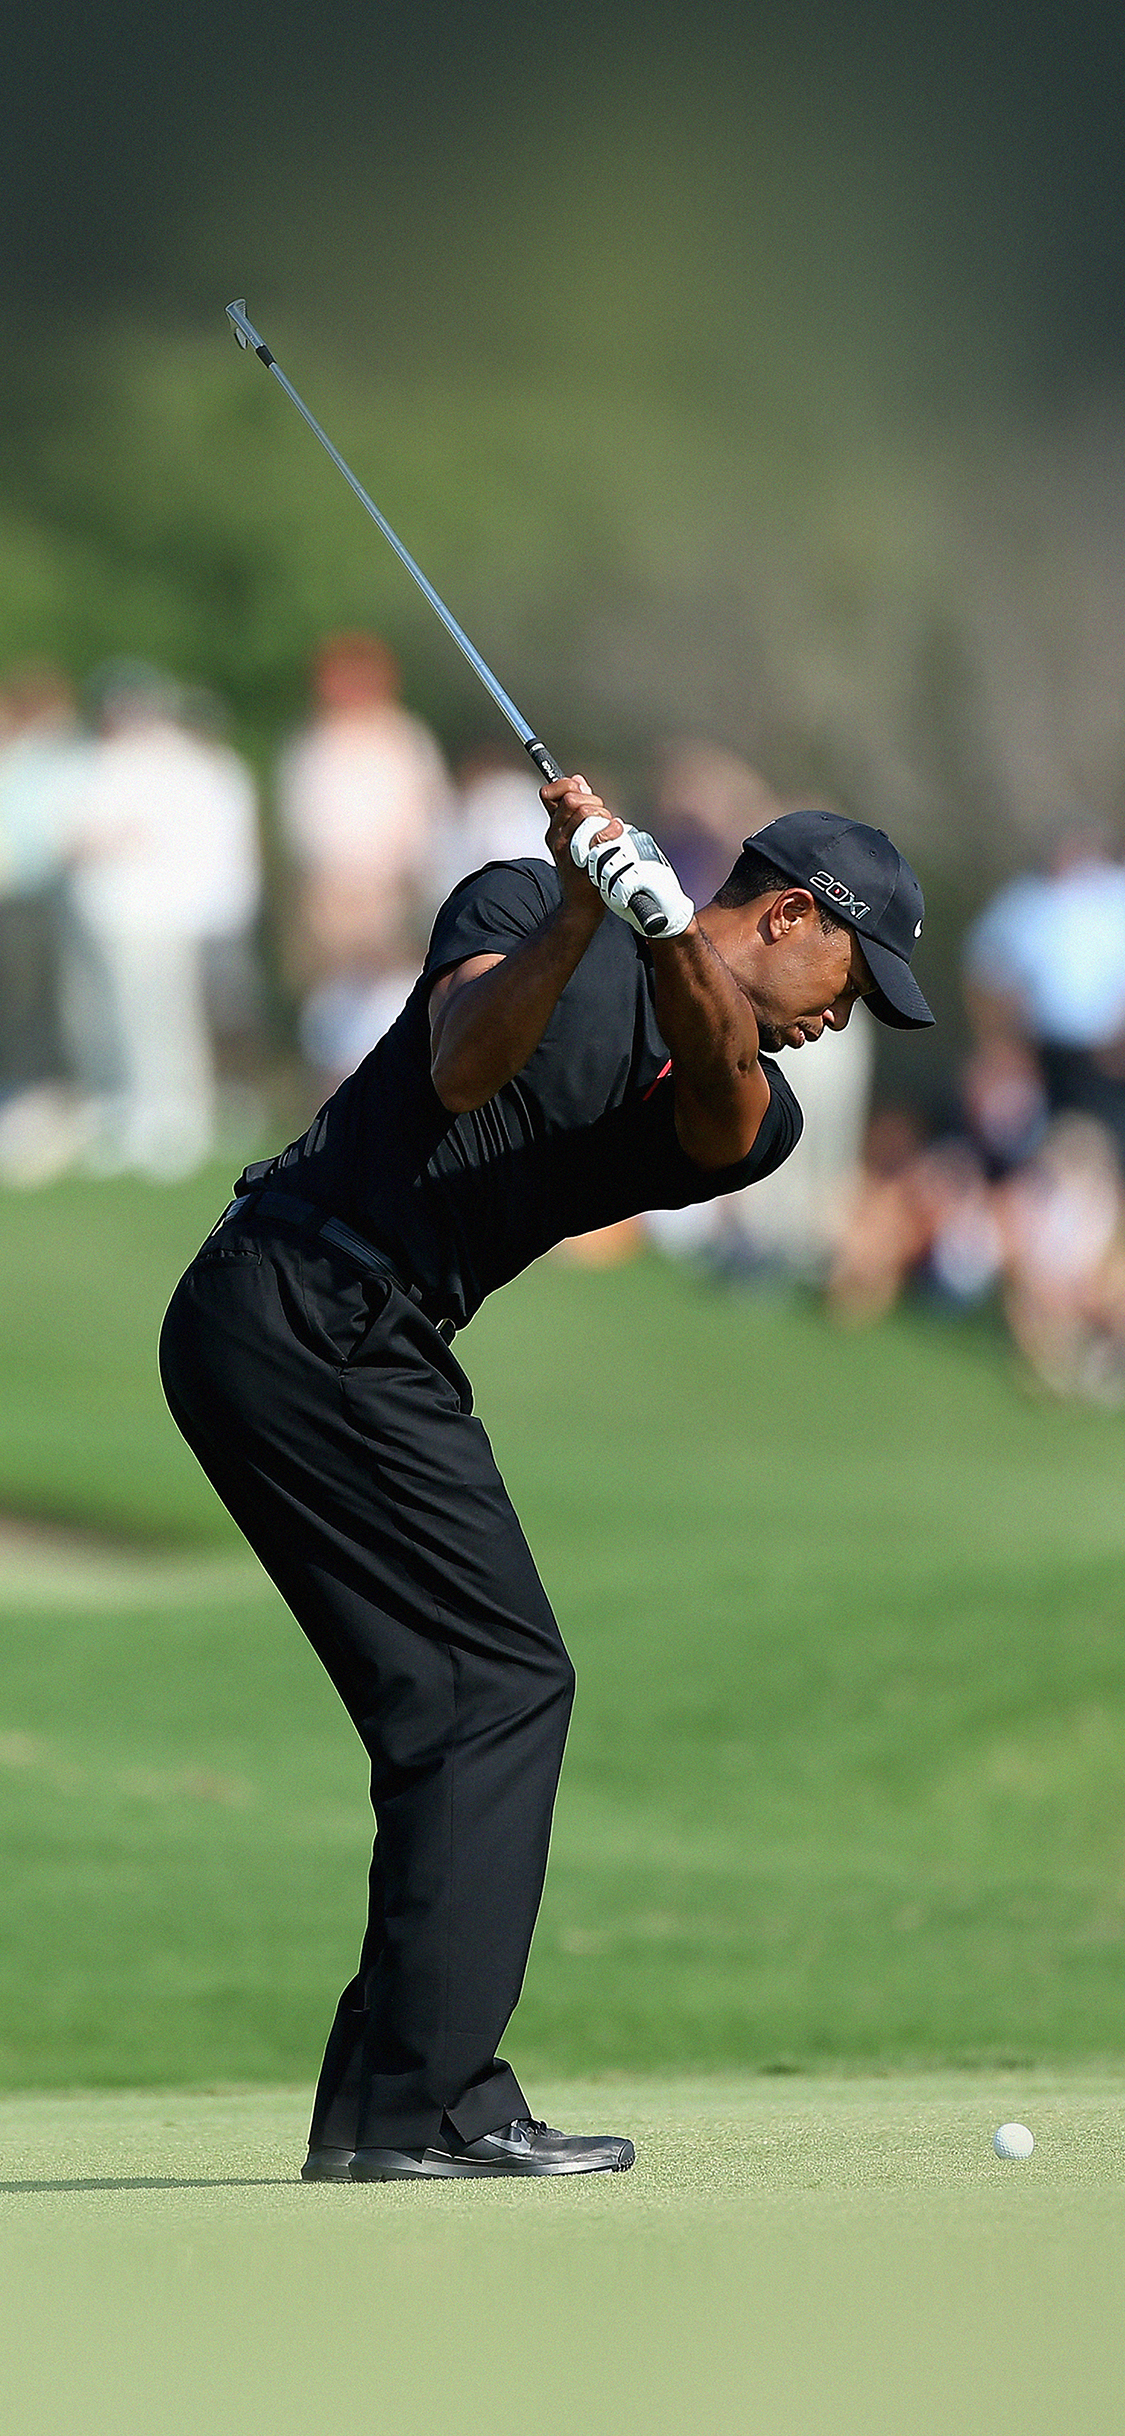 he35-tiger-woods-golf-sports - Papers.co